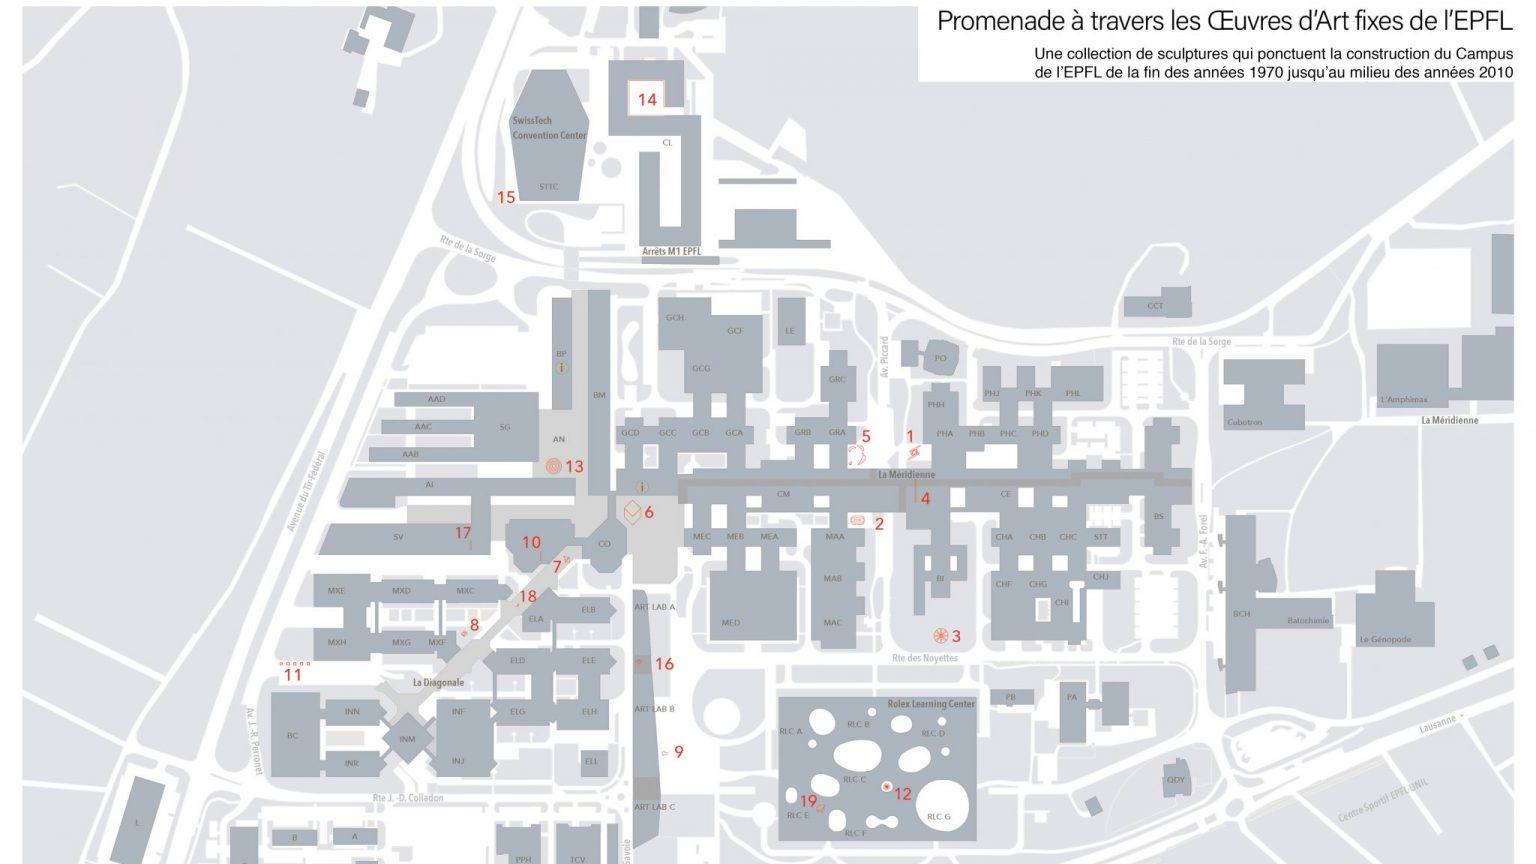 Location map of the fixed works of art on the EPFL campus.